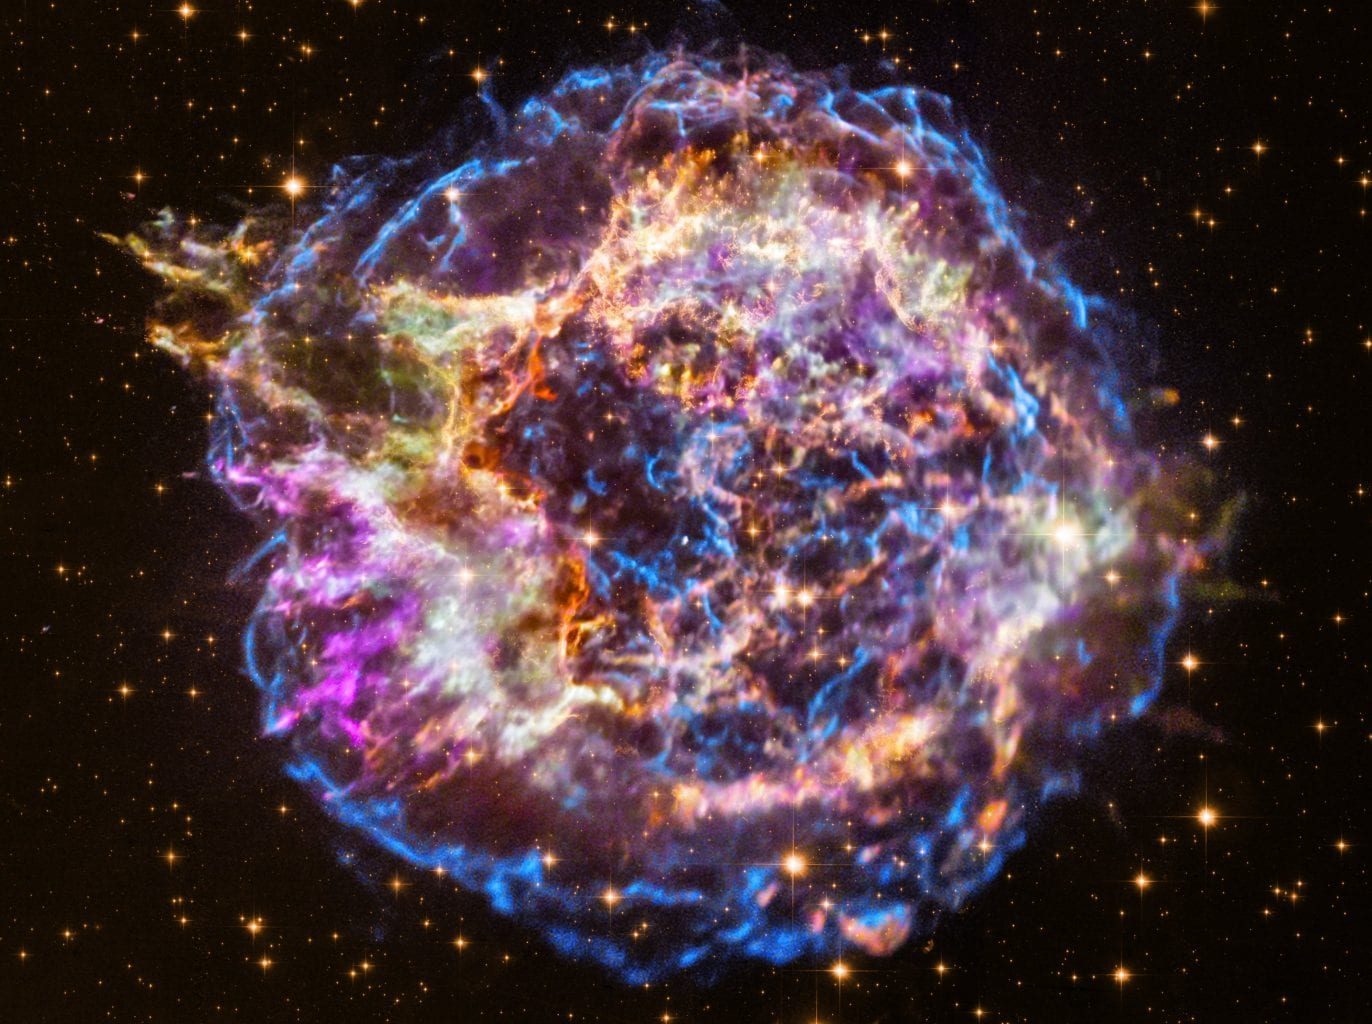 Supernova remnant Cassiopeia A has been studied by Chandra for decades and has provided incredibe data about this object. Credit: X-ray: NASA/CXC/RIKEN/T. Sato et al.; Optical: NASA/STScI